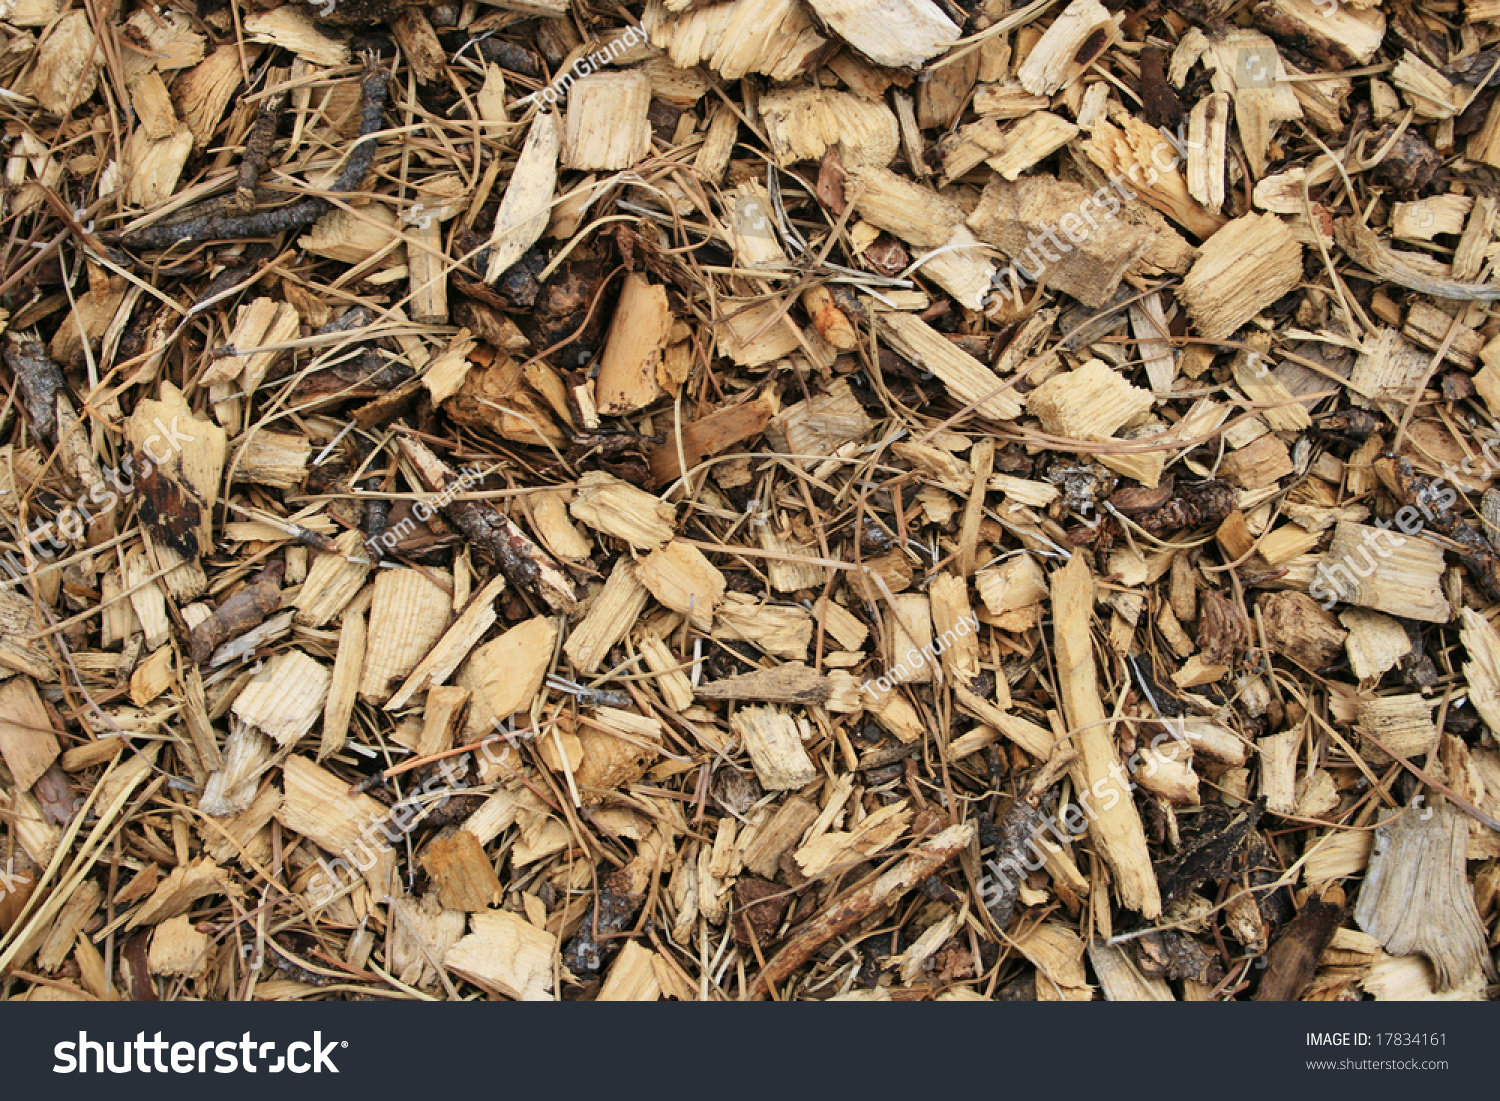 Wood chip and pine needle mulch background stock photo